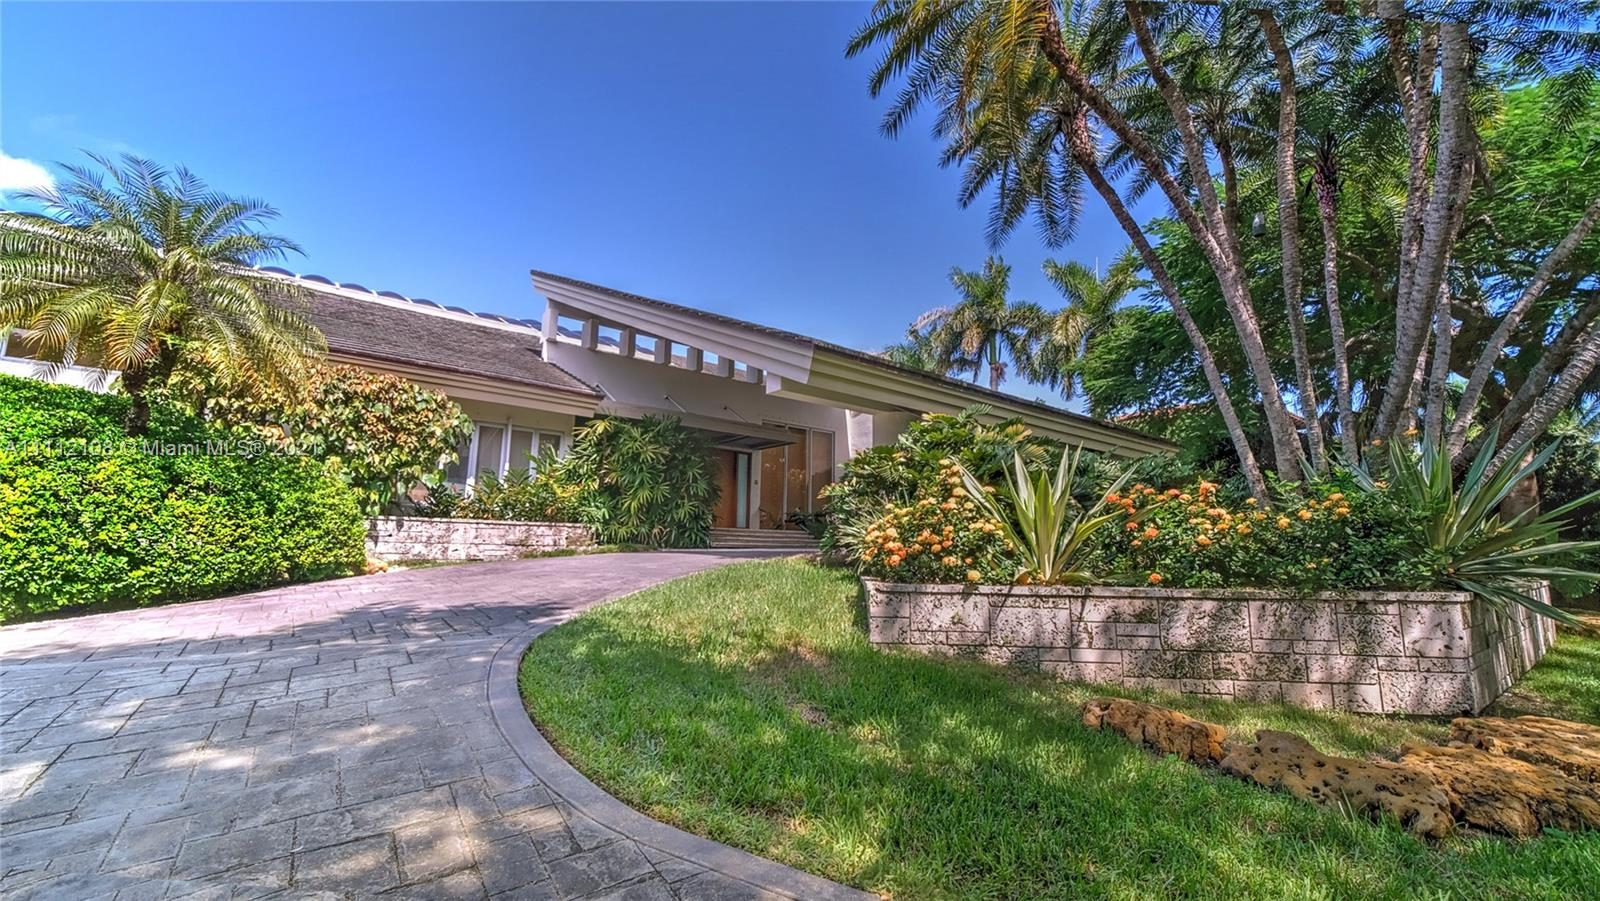 Fabulous Miami Modern waterfront home in glamorous, gated Gables Estates boasts grandly scaled dbl-height interiors and cascading natural light. Level 1 includes oversized living, dining, family w/fireplace, wet bar & pool views, library/office, home theater, eat-in kitchen appointed w/Sub-Zero, Wolf & Miele + pantry & breakfast rm; 3-bdrm suite for staff or teens; plus cabana bath, laundry & attached garage. Level 2: Enormous primary suite w/sumptuous bath & huge walk-ins; 4 unique en suite bdrms designed w/private lofts. Light hardwood flows thruout. Huge gym +bonus space. Wonderful covered outdoor living area & BBQ frames huge tiered patio & pool laid in native oolitic limestone. 16-ft elevation; lush tropical landscape, 180 waterfront ft, 66-ft dock, minutes to open bay. Paradise!